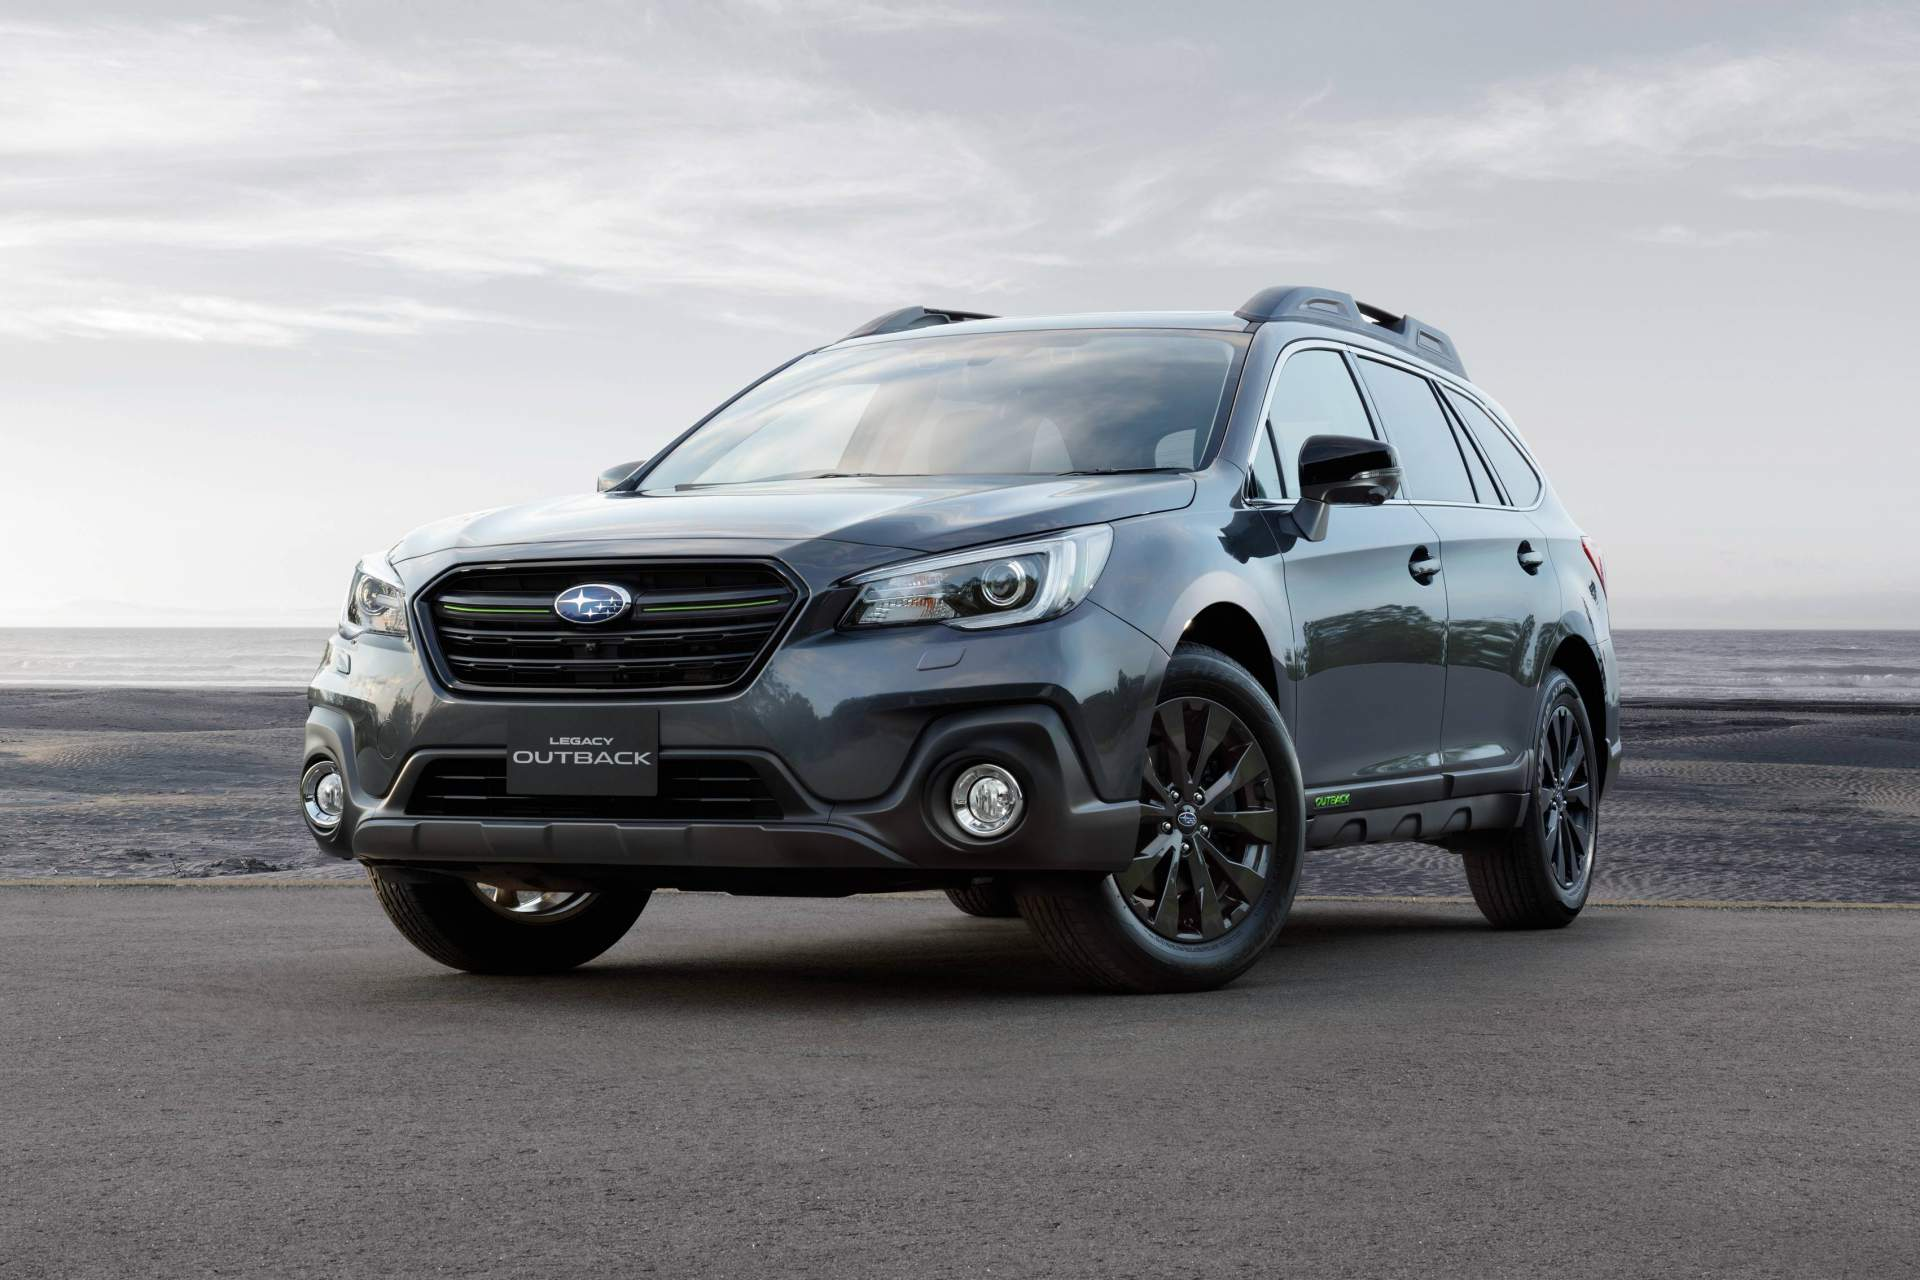 subaru-outback-x-break-dac-biet-1.jpeg